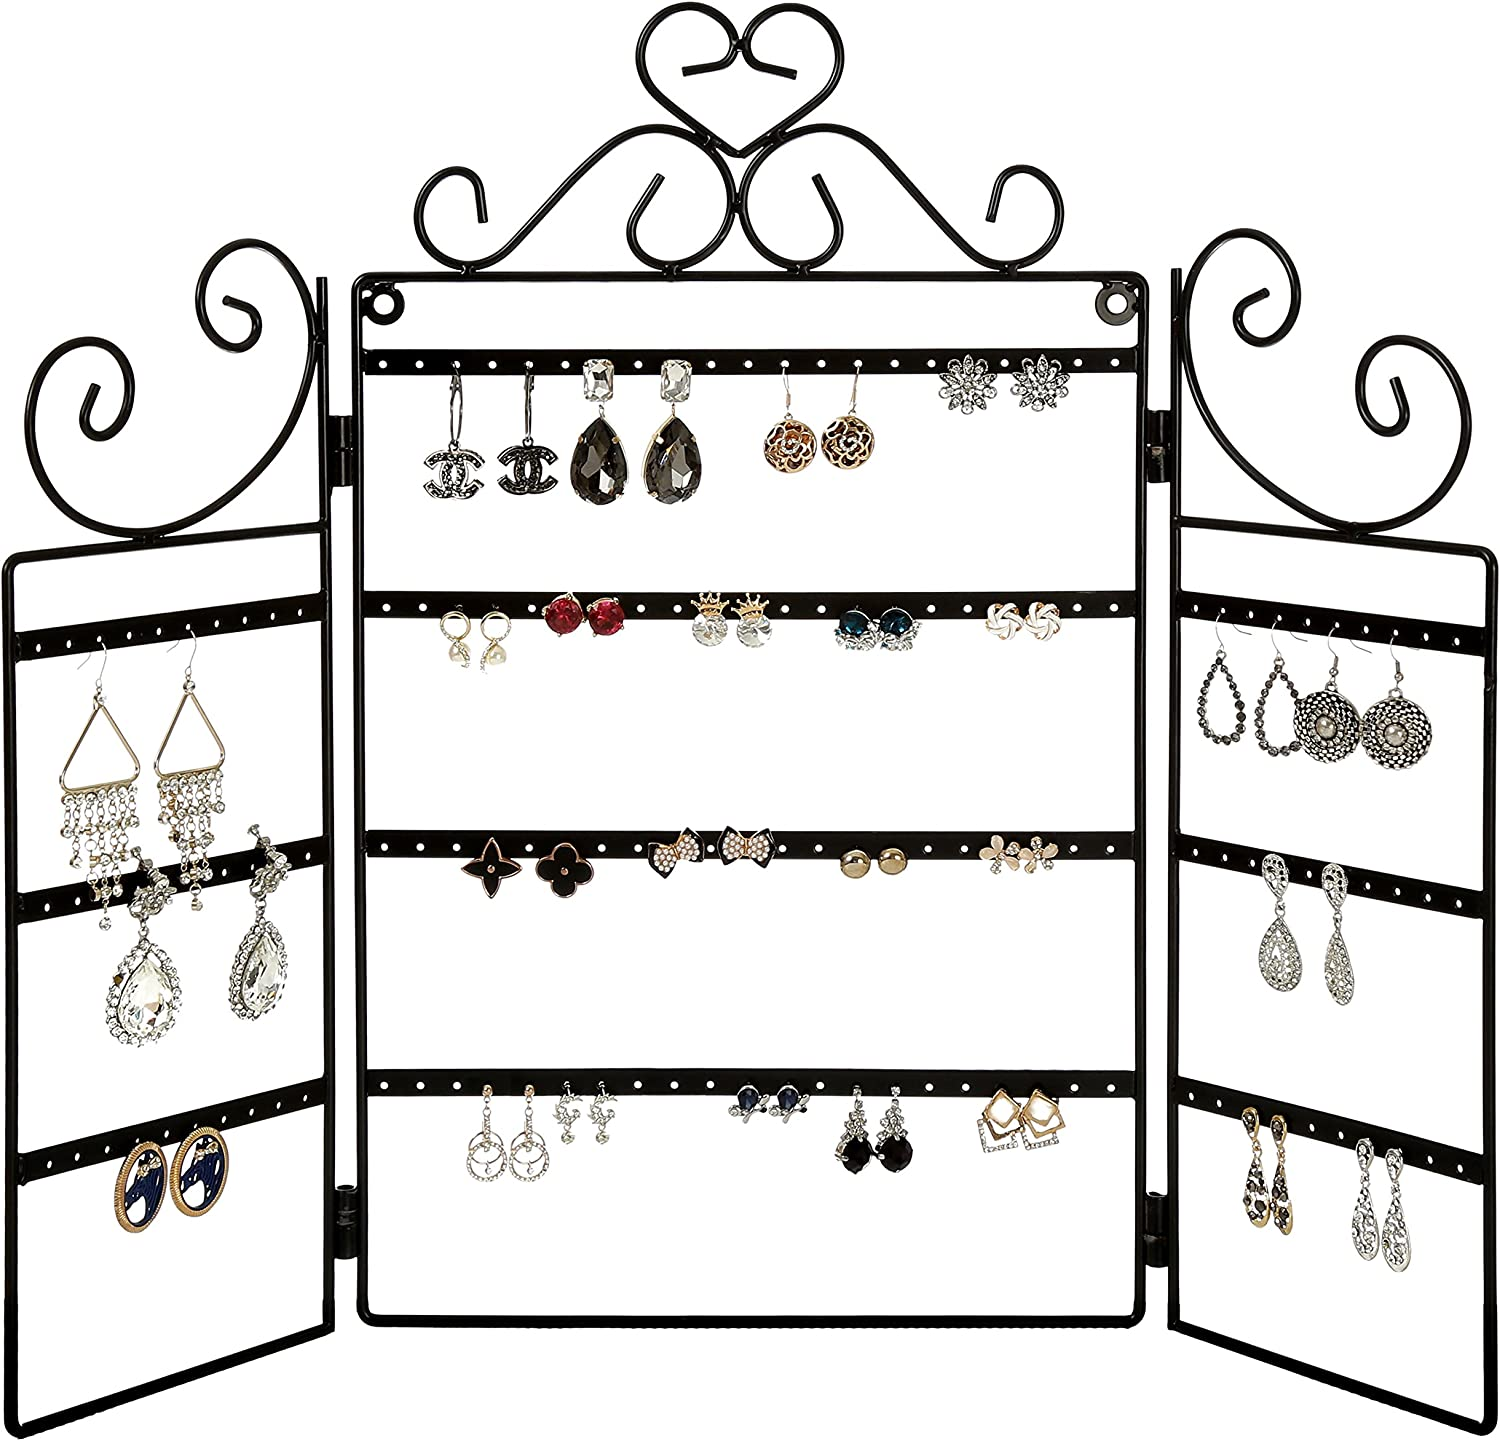 MyGift 72 Pair Earring Organizer Stand, Wall Mount Jewelry Display Rack, Black